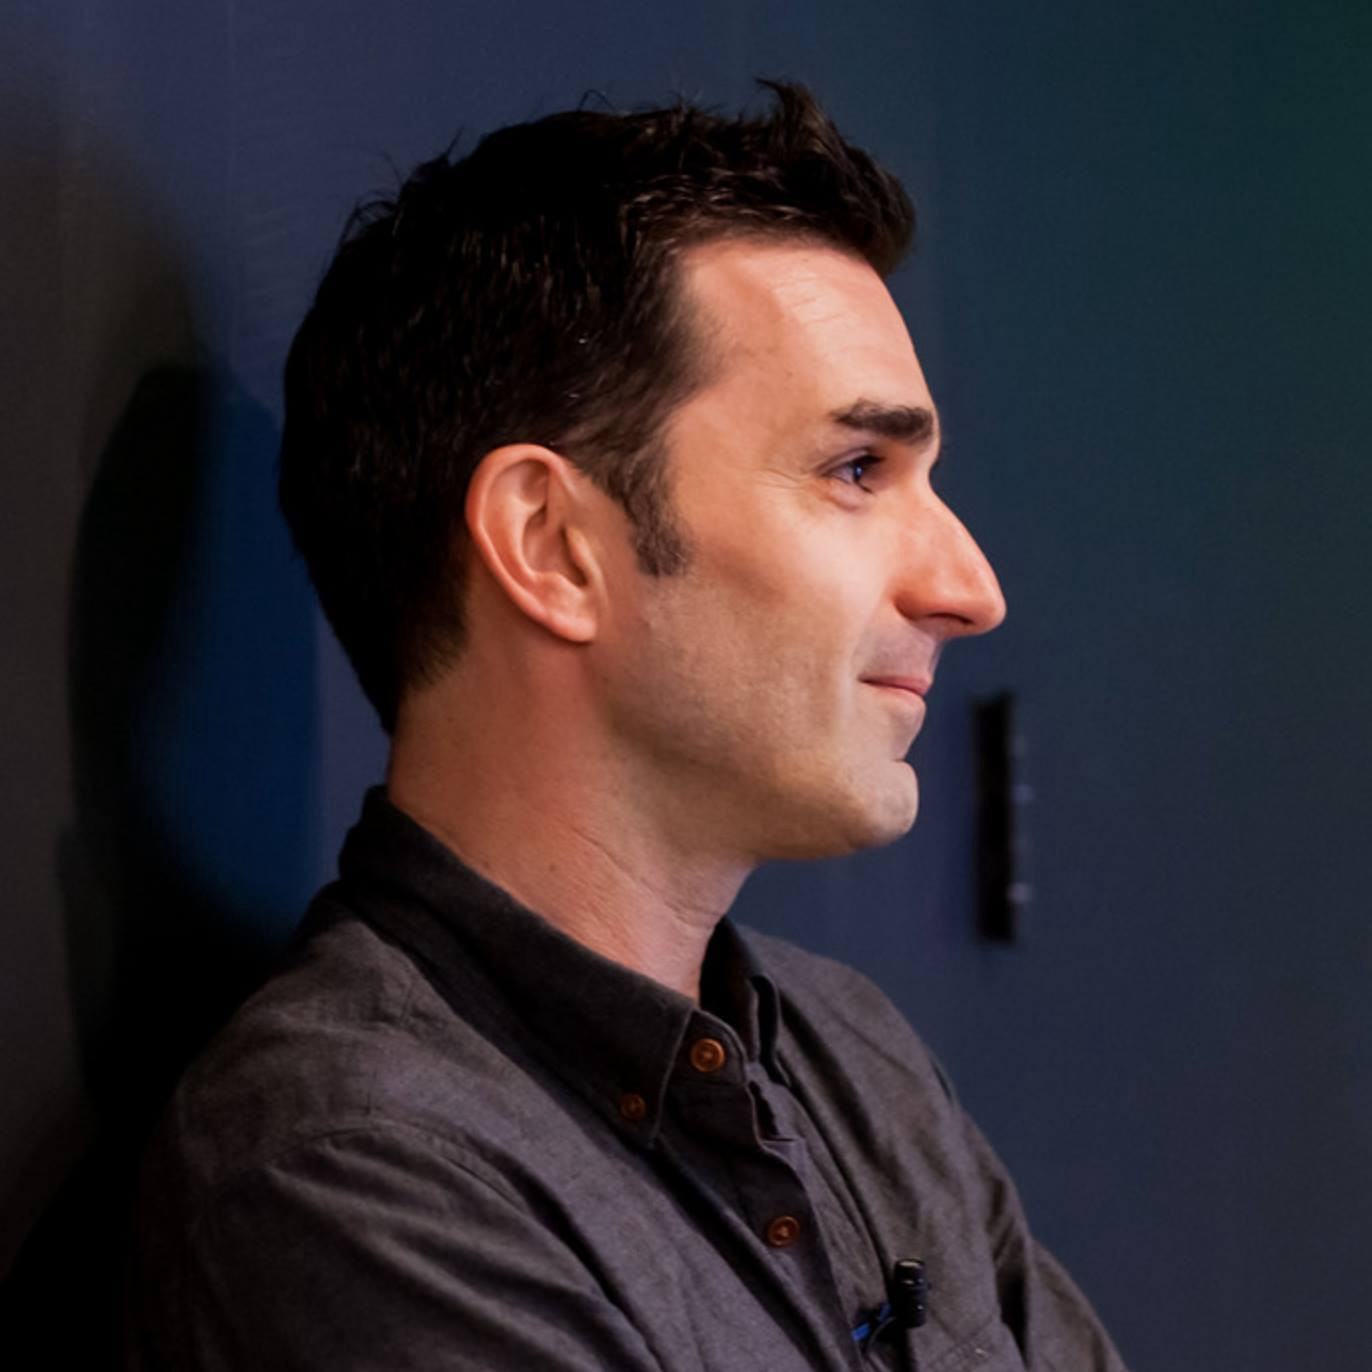 Christopher Simmons is a Canadian-born, designer, writer, educator